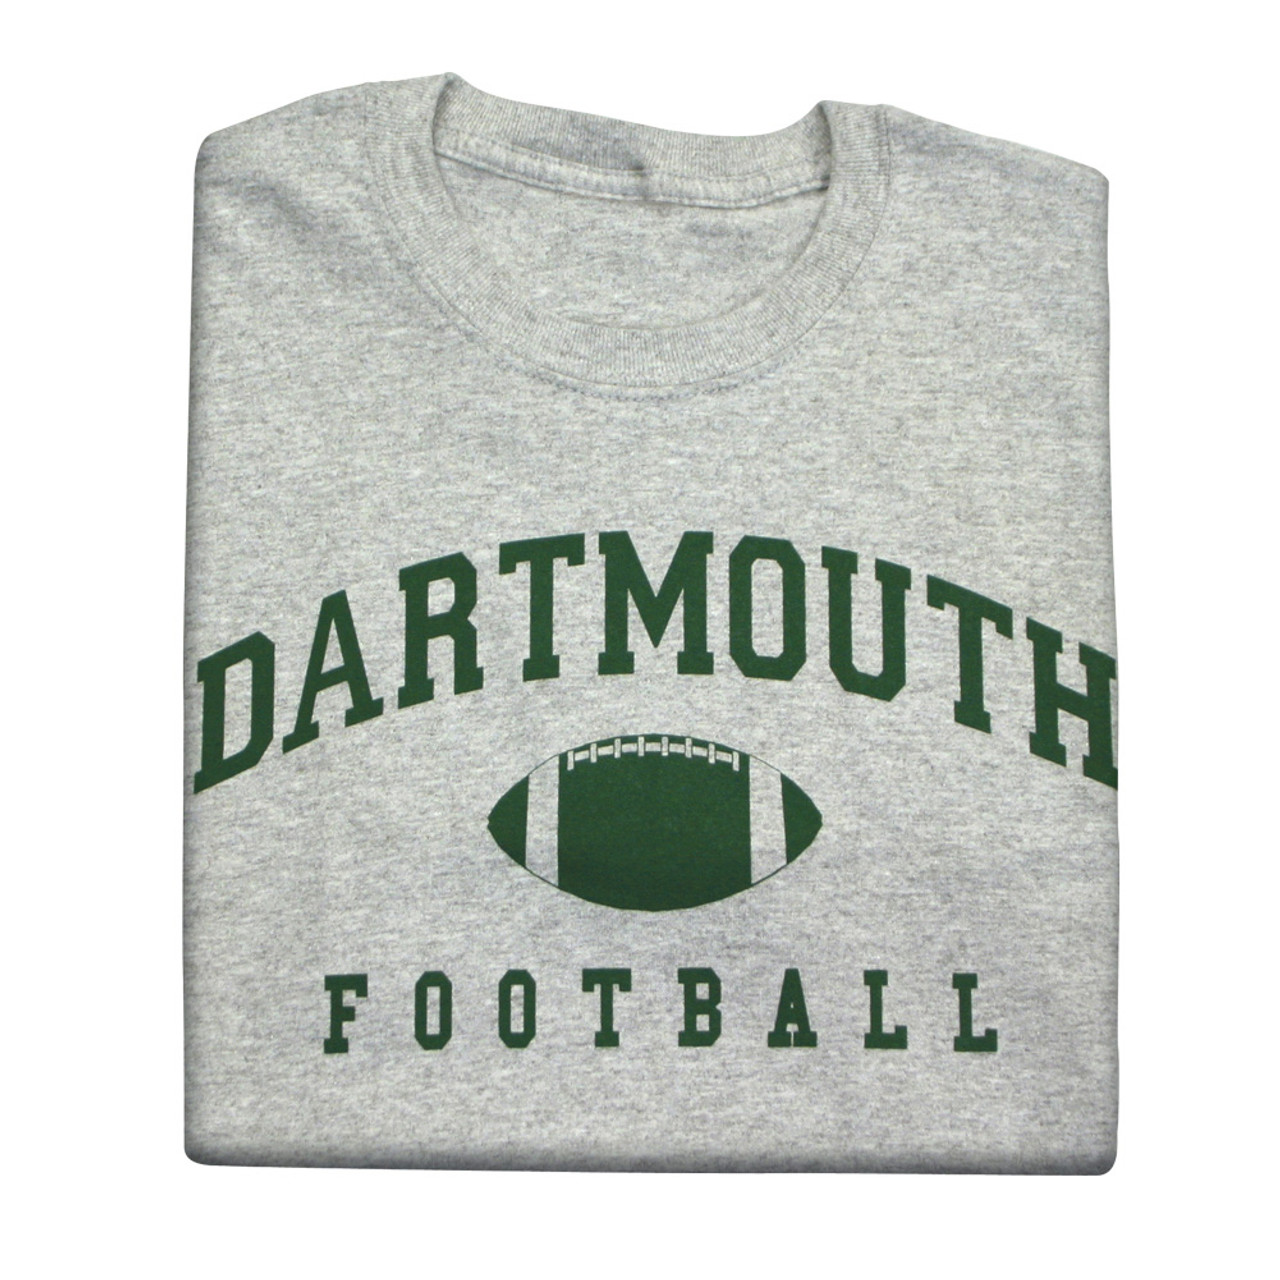 Dartmouth Football T Shirts Football T Shirt With College L